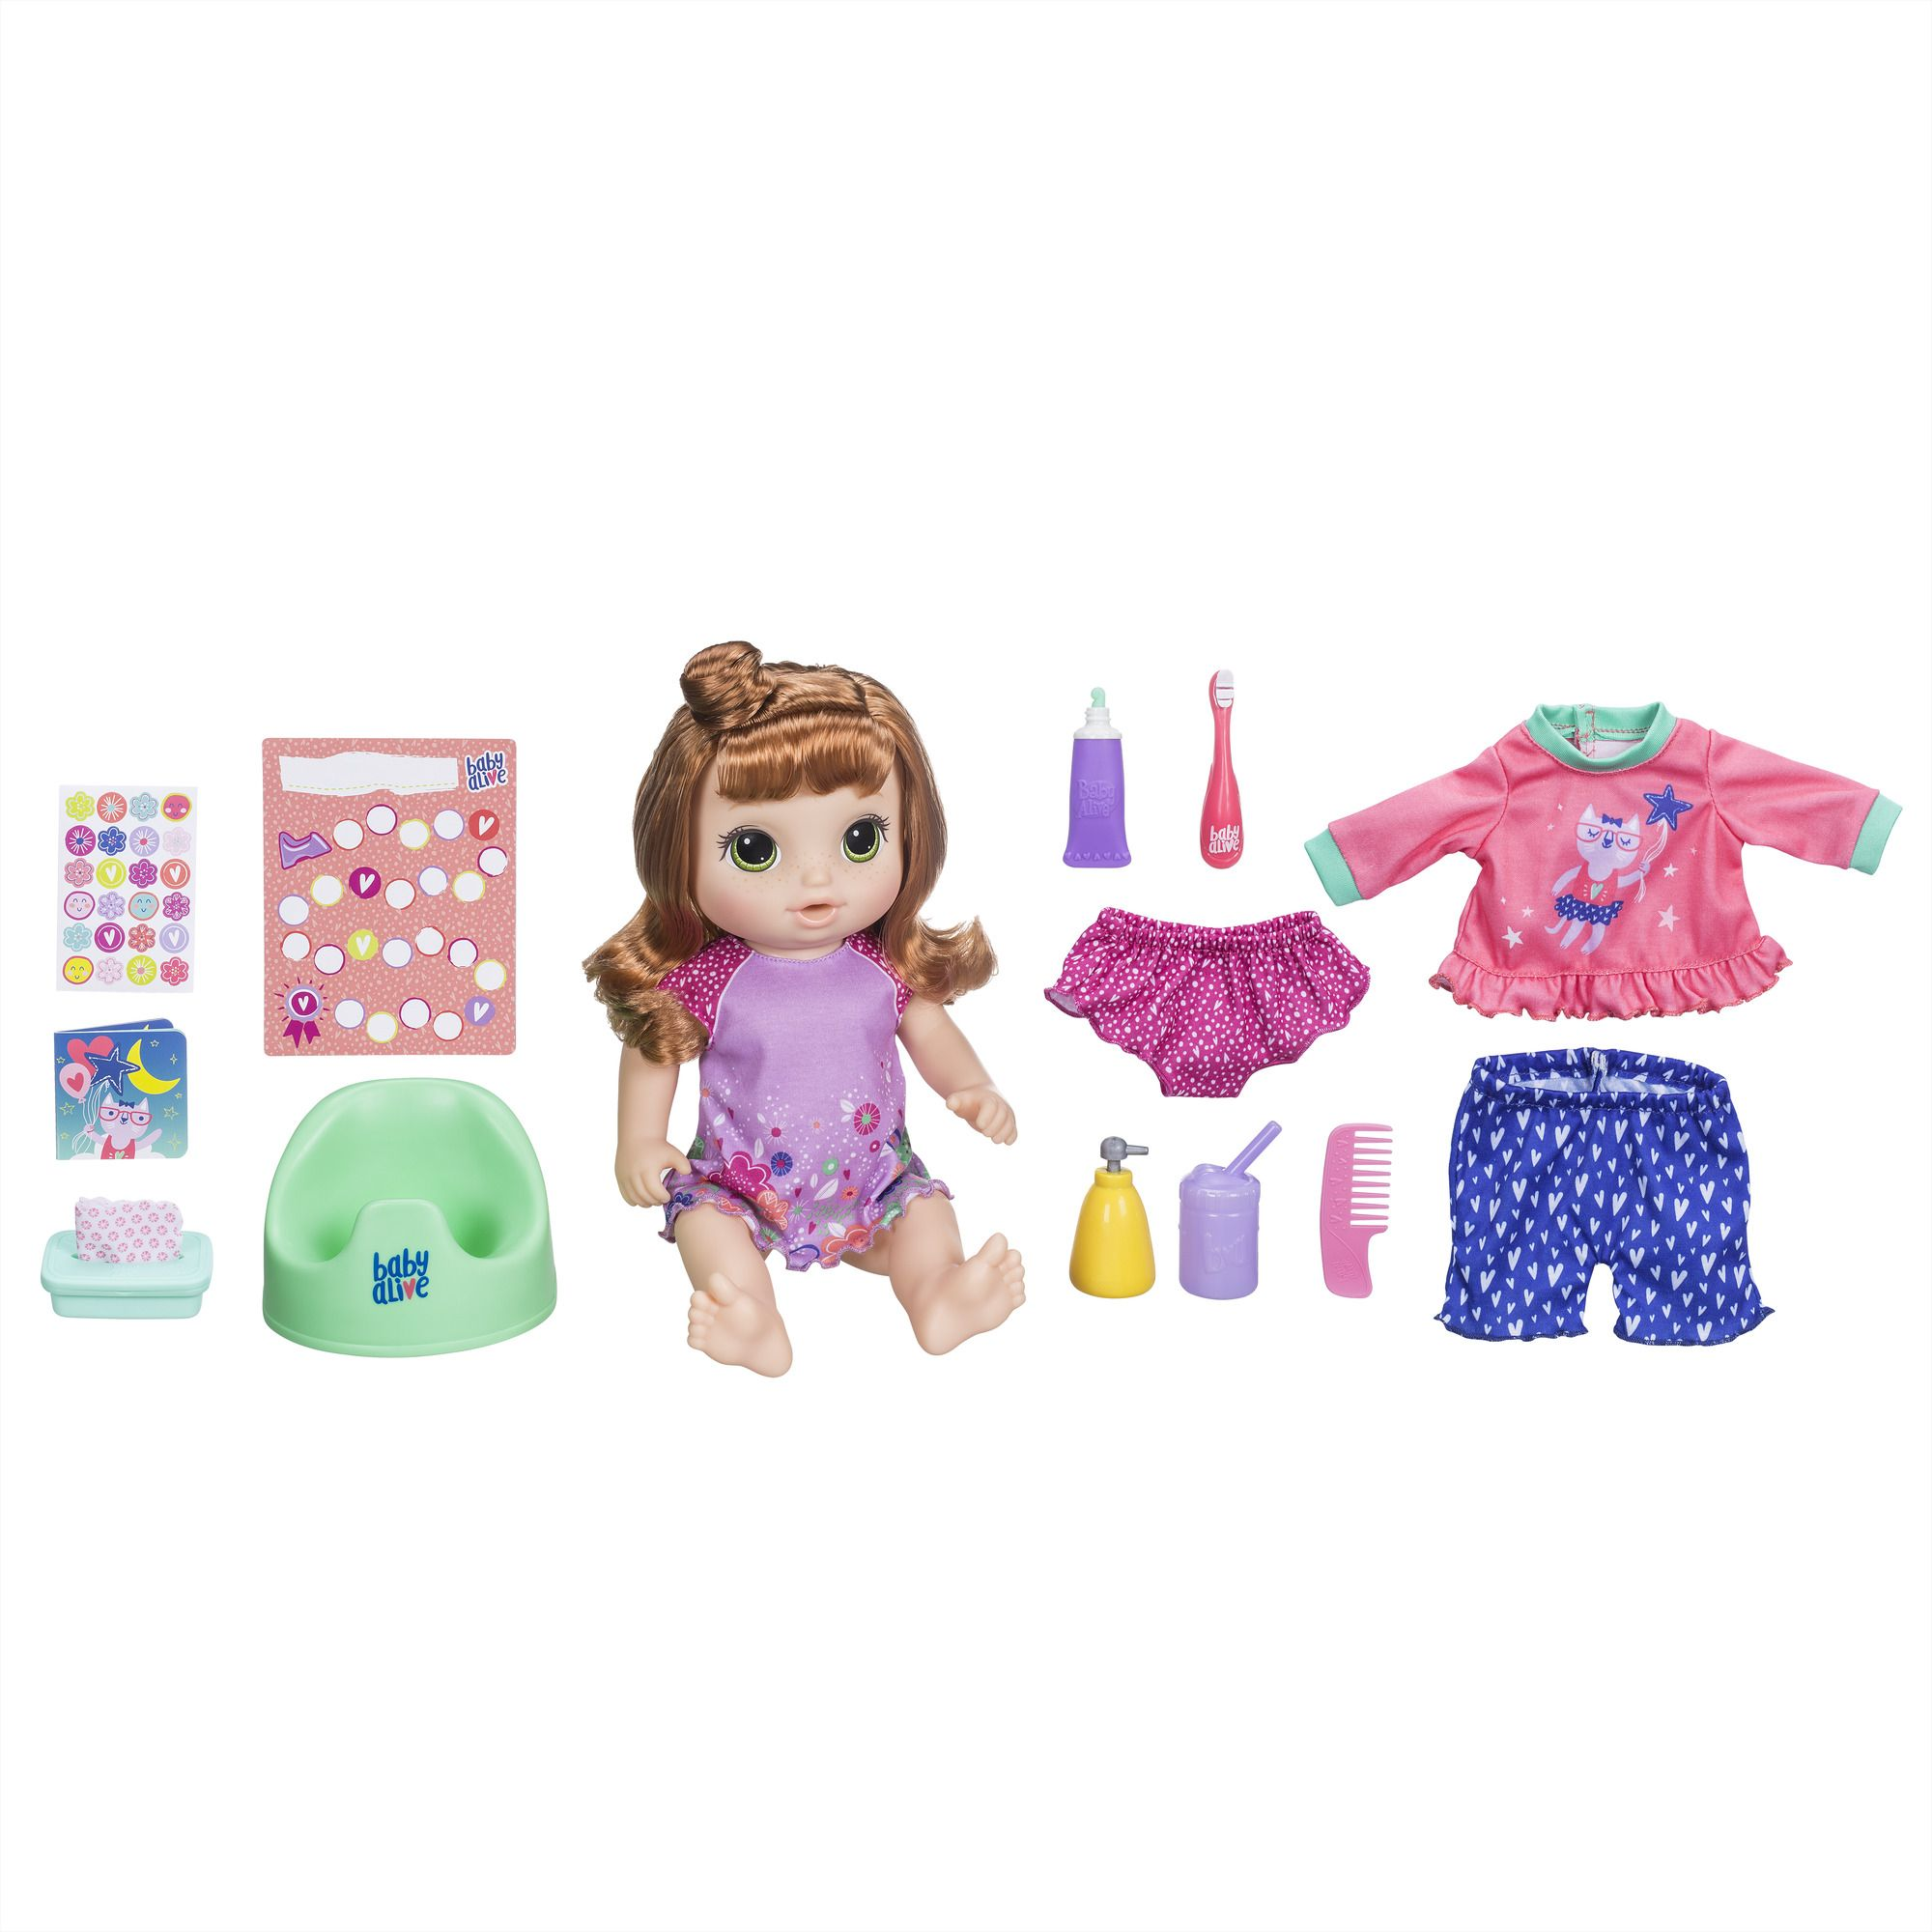 Baby Alive Potty Dance Baby Exclusive Value Pack Red Curly Hair Walmart Inventory Checker Brickseek 2 0 In 2020 Baby Alive Baby Alive Dolls Baby Dolls For Kids